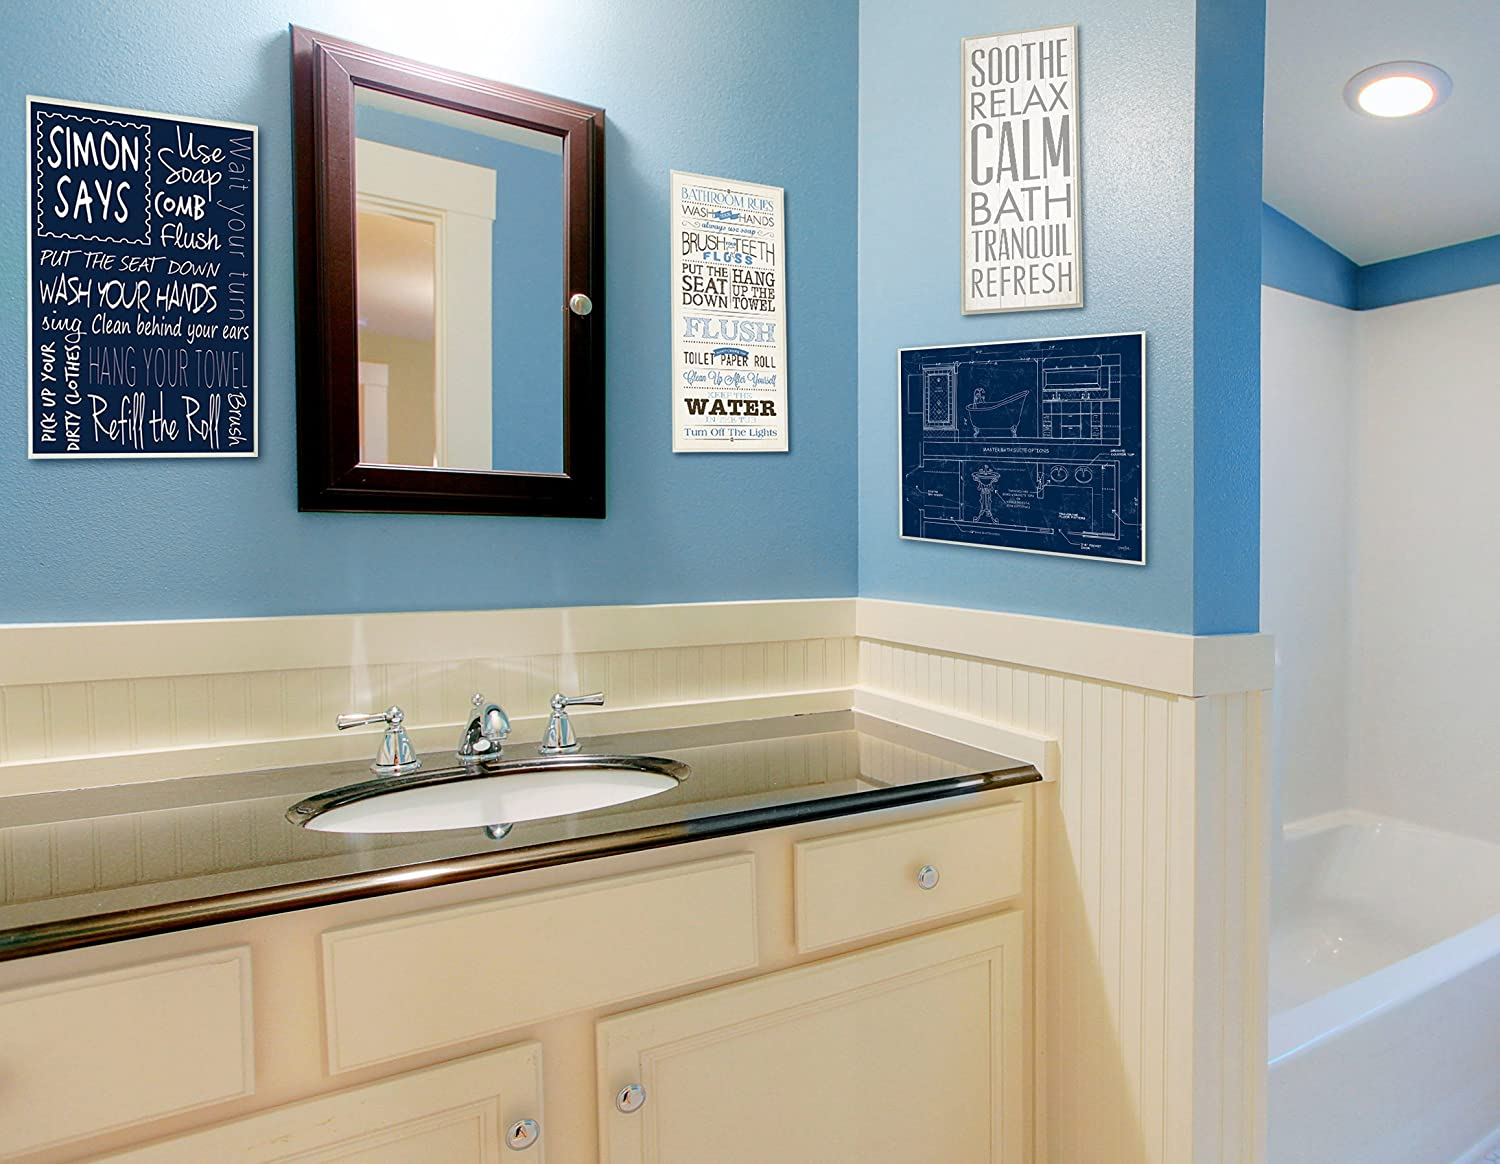 Proudly Made in USA Stupell Home D/écor Bathroom Rules Blue And Black Print Bathroom Wall Plaque 7 x 0.5 x 17